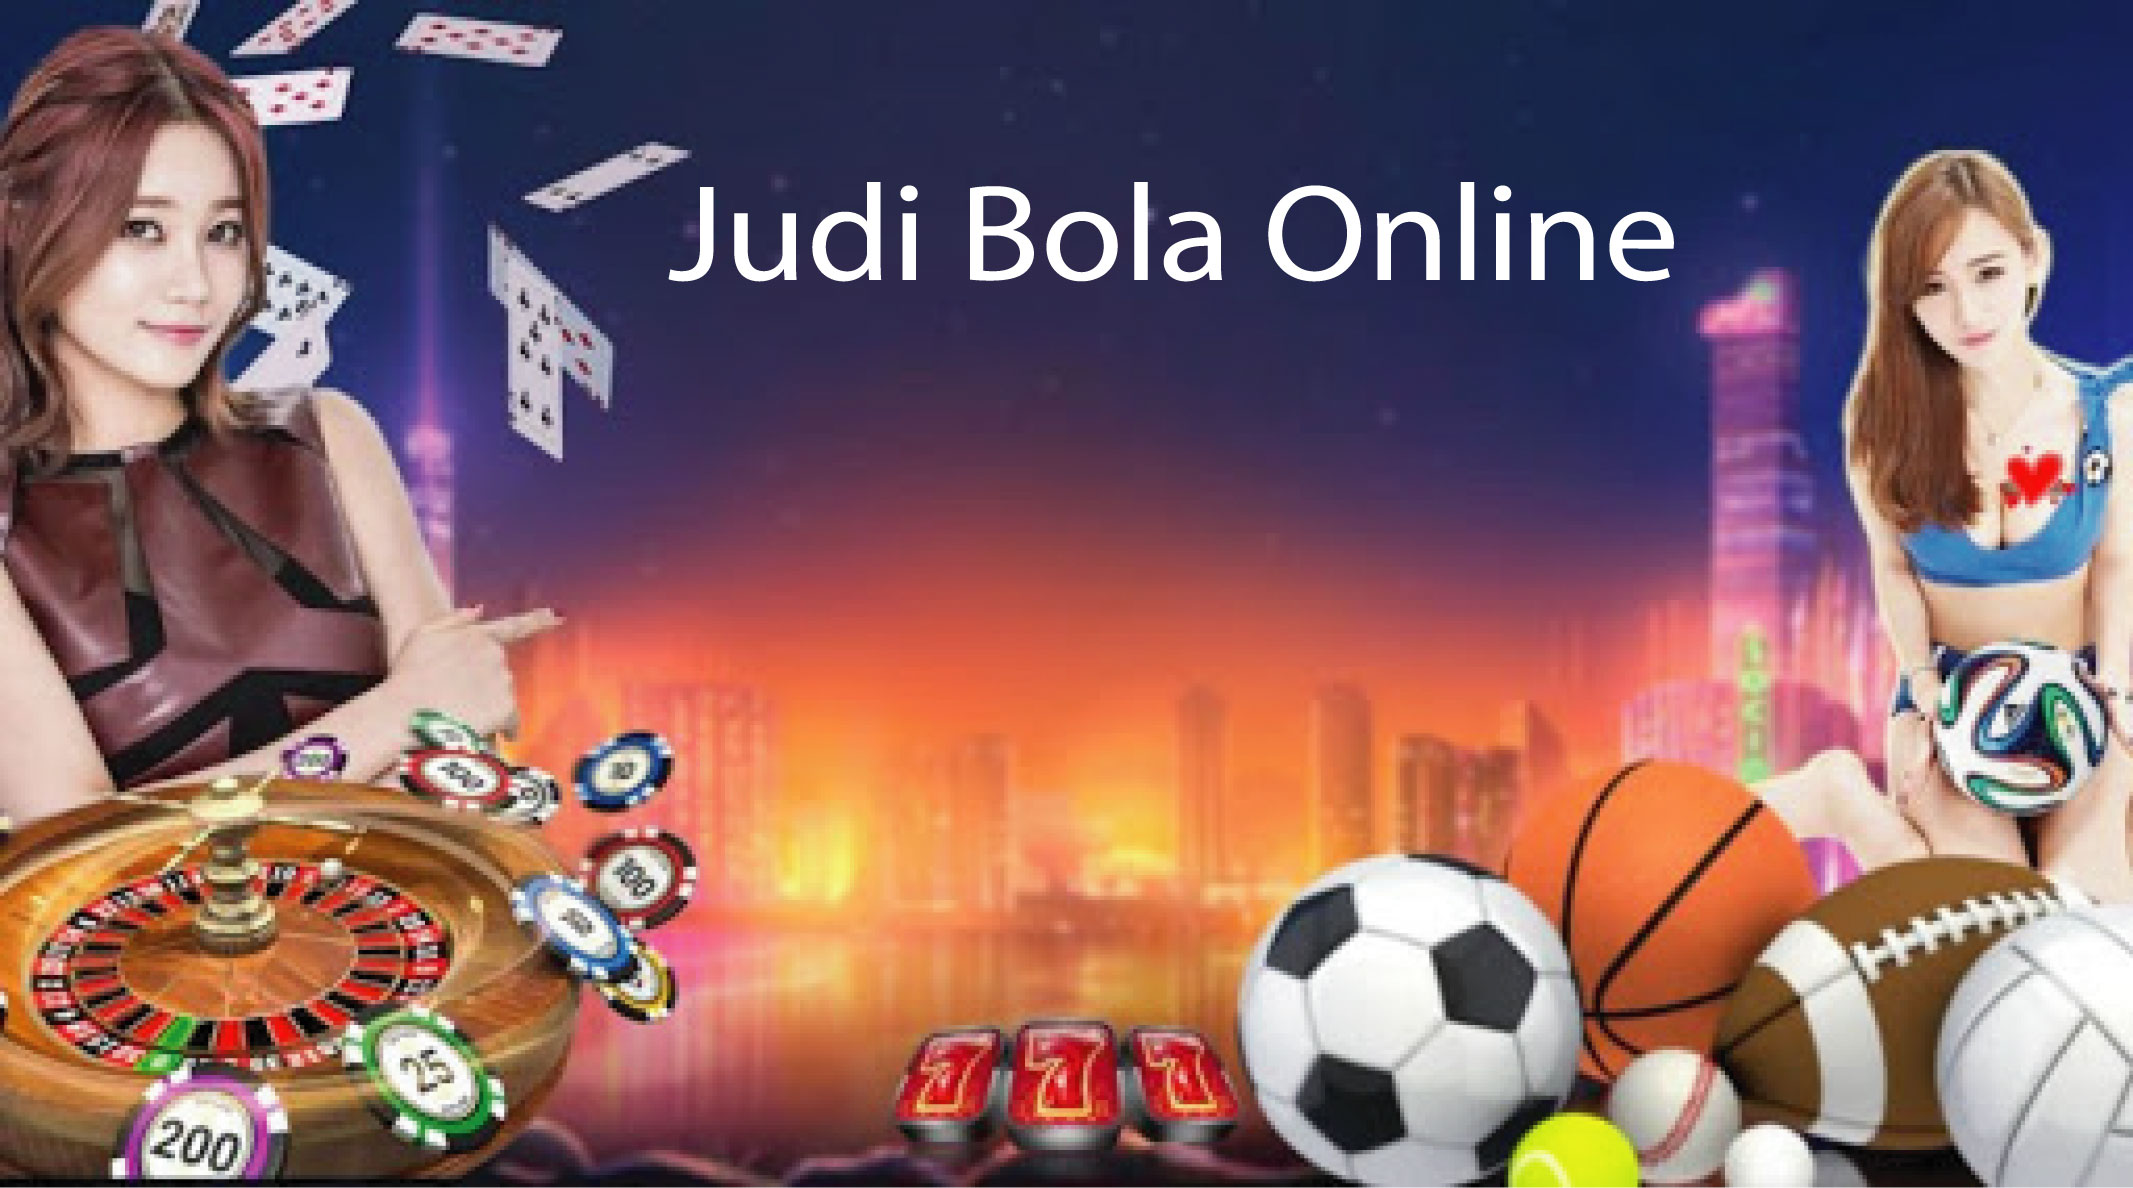 Learn the important benefits of online gambling sites